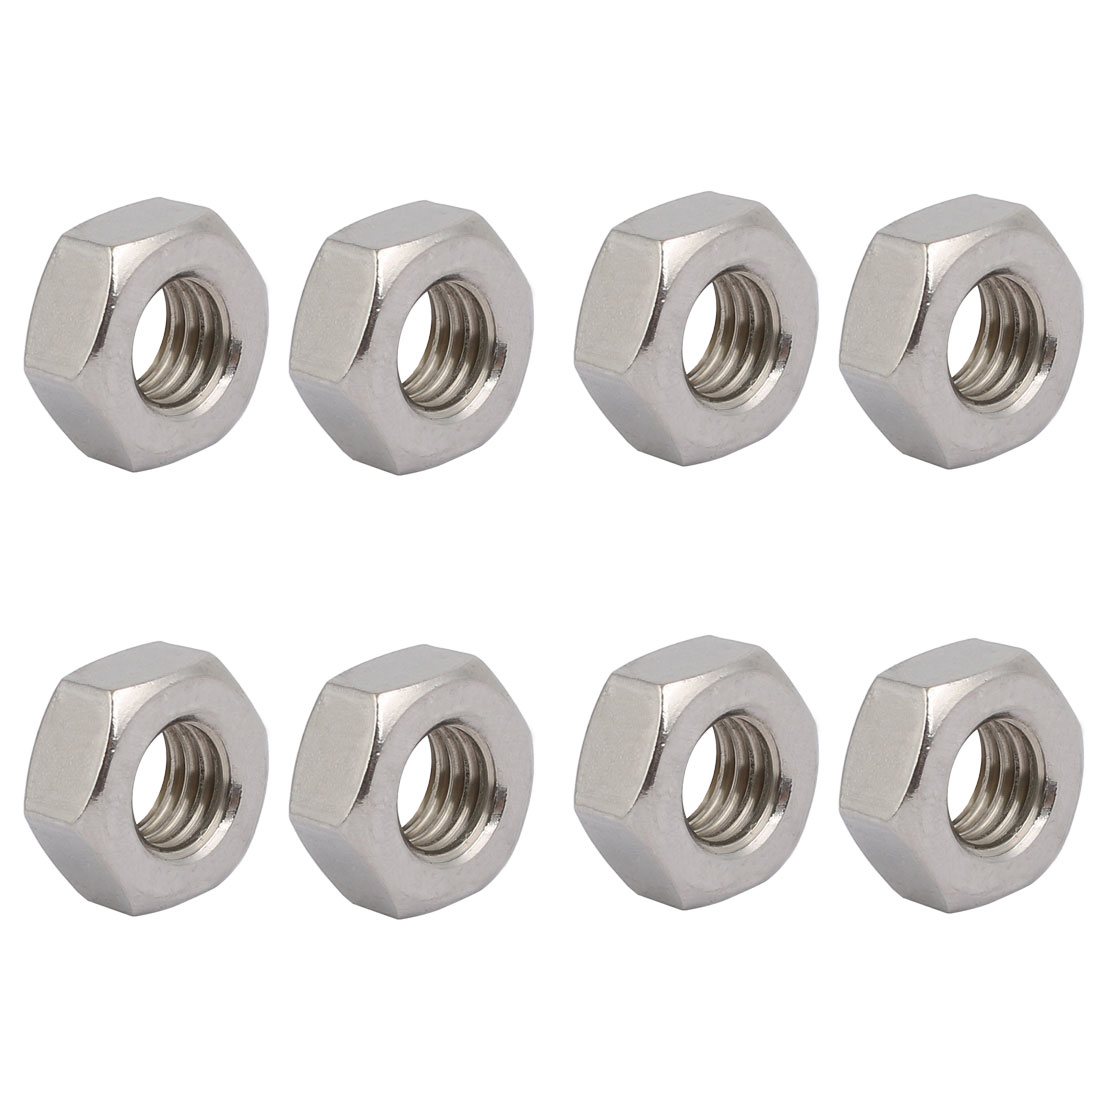 8pcs M10 x 1.5mm Pitch Metric Thread 304 Stainless Steel Left Hand Hex Nuts